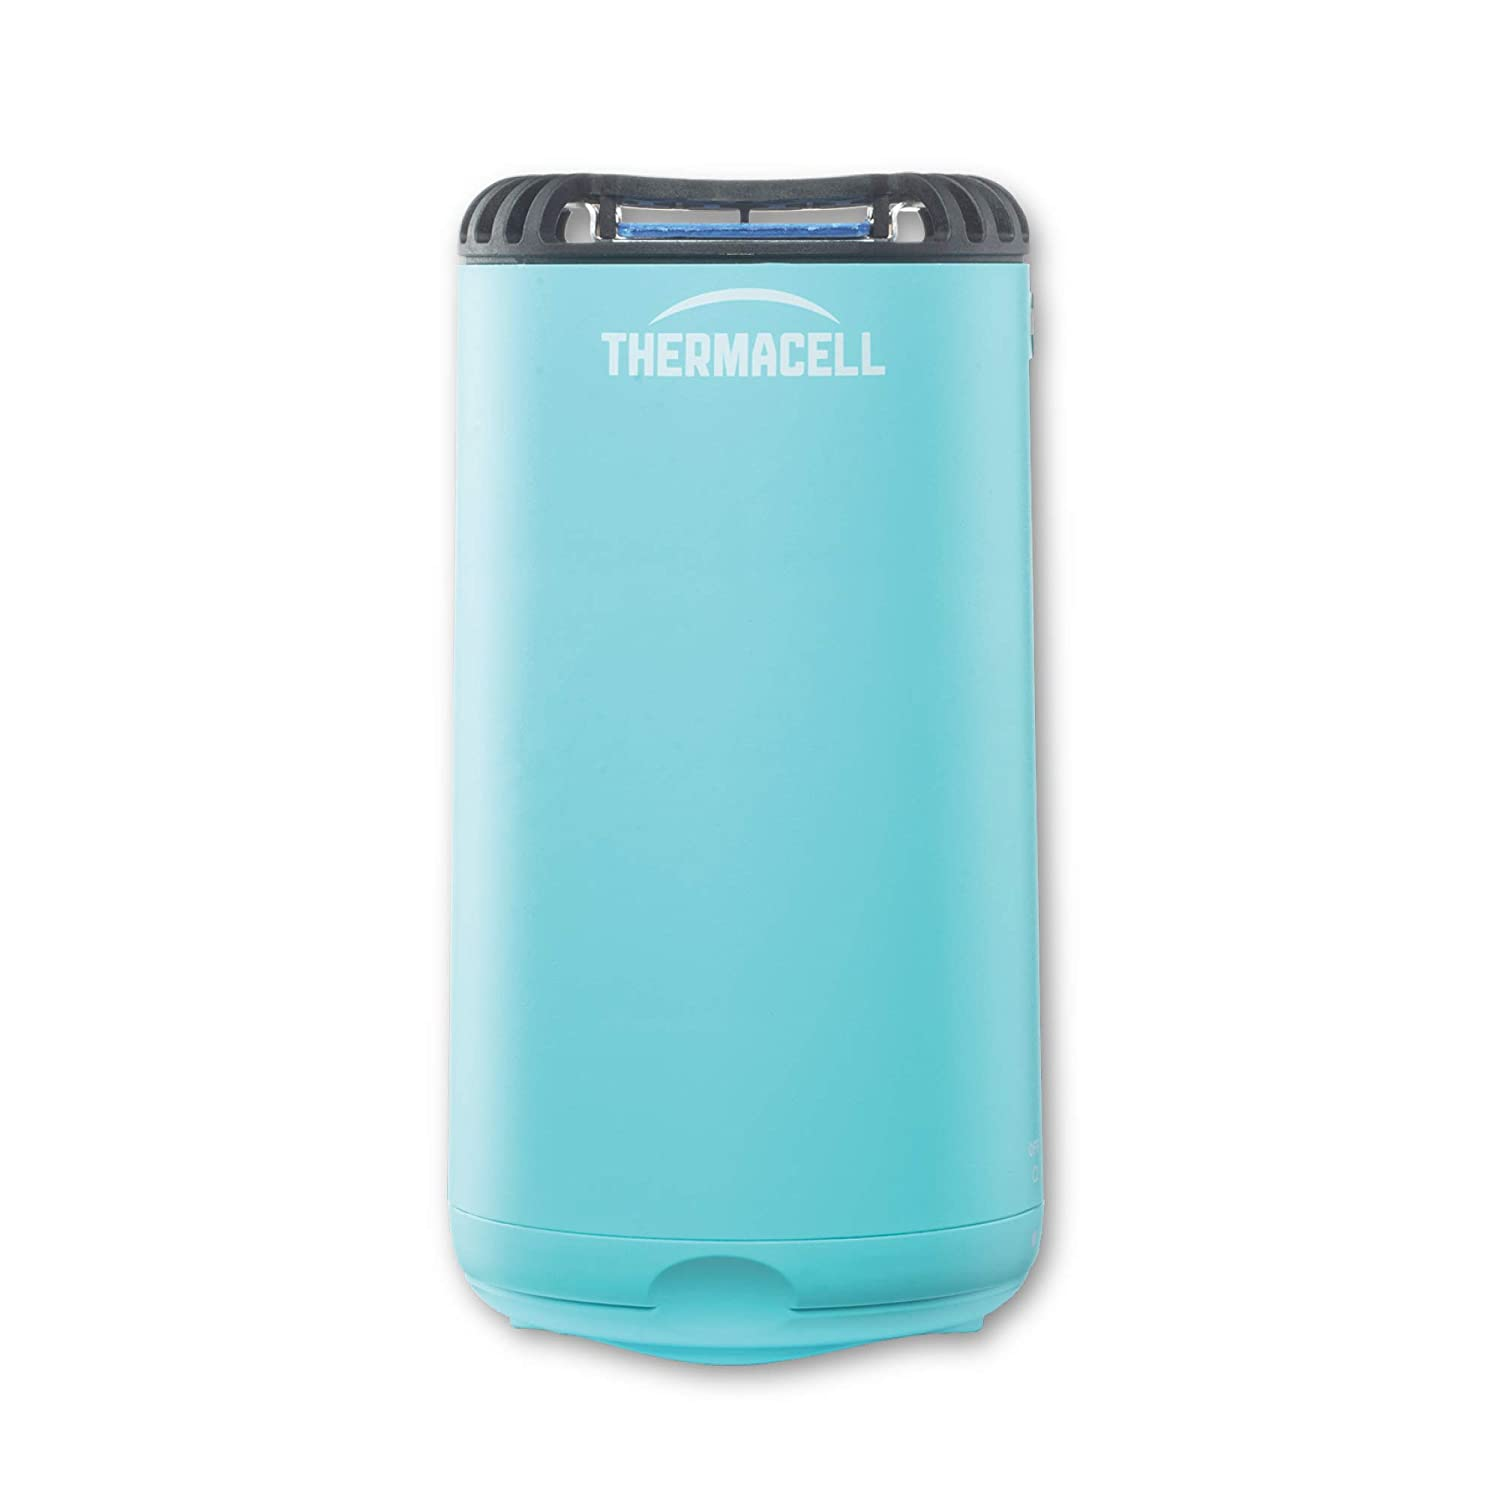 Thermacell Patio Shield Mosquito Repeller, Glacial Blue; Easy to Use, Highly Effective; Provides 12 Hours of DEET-Free